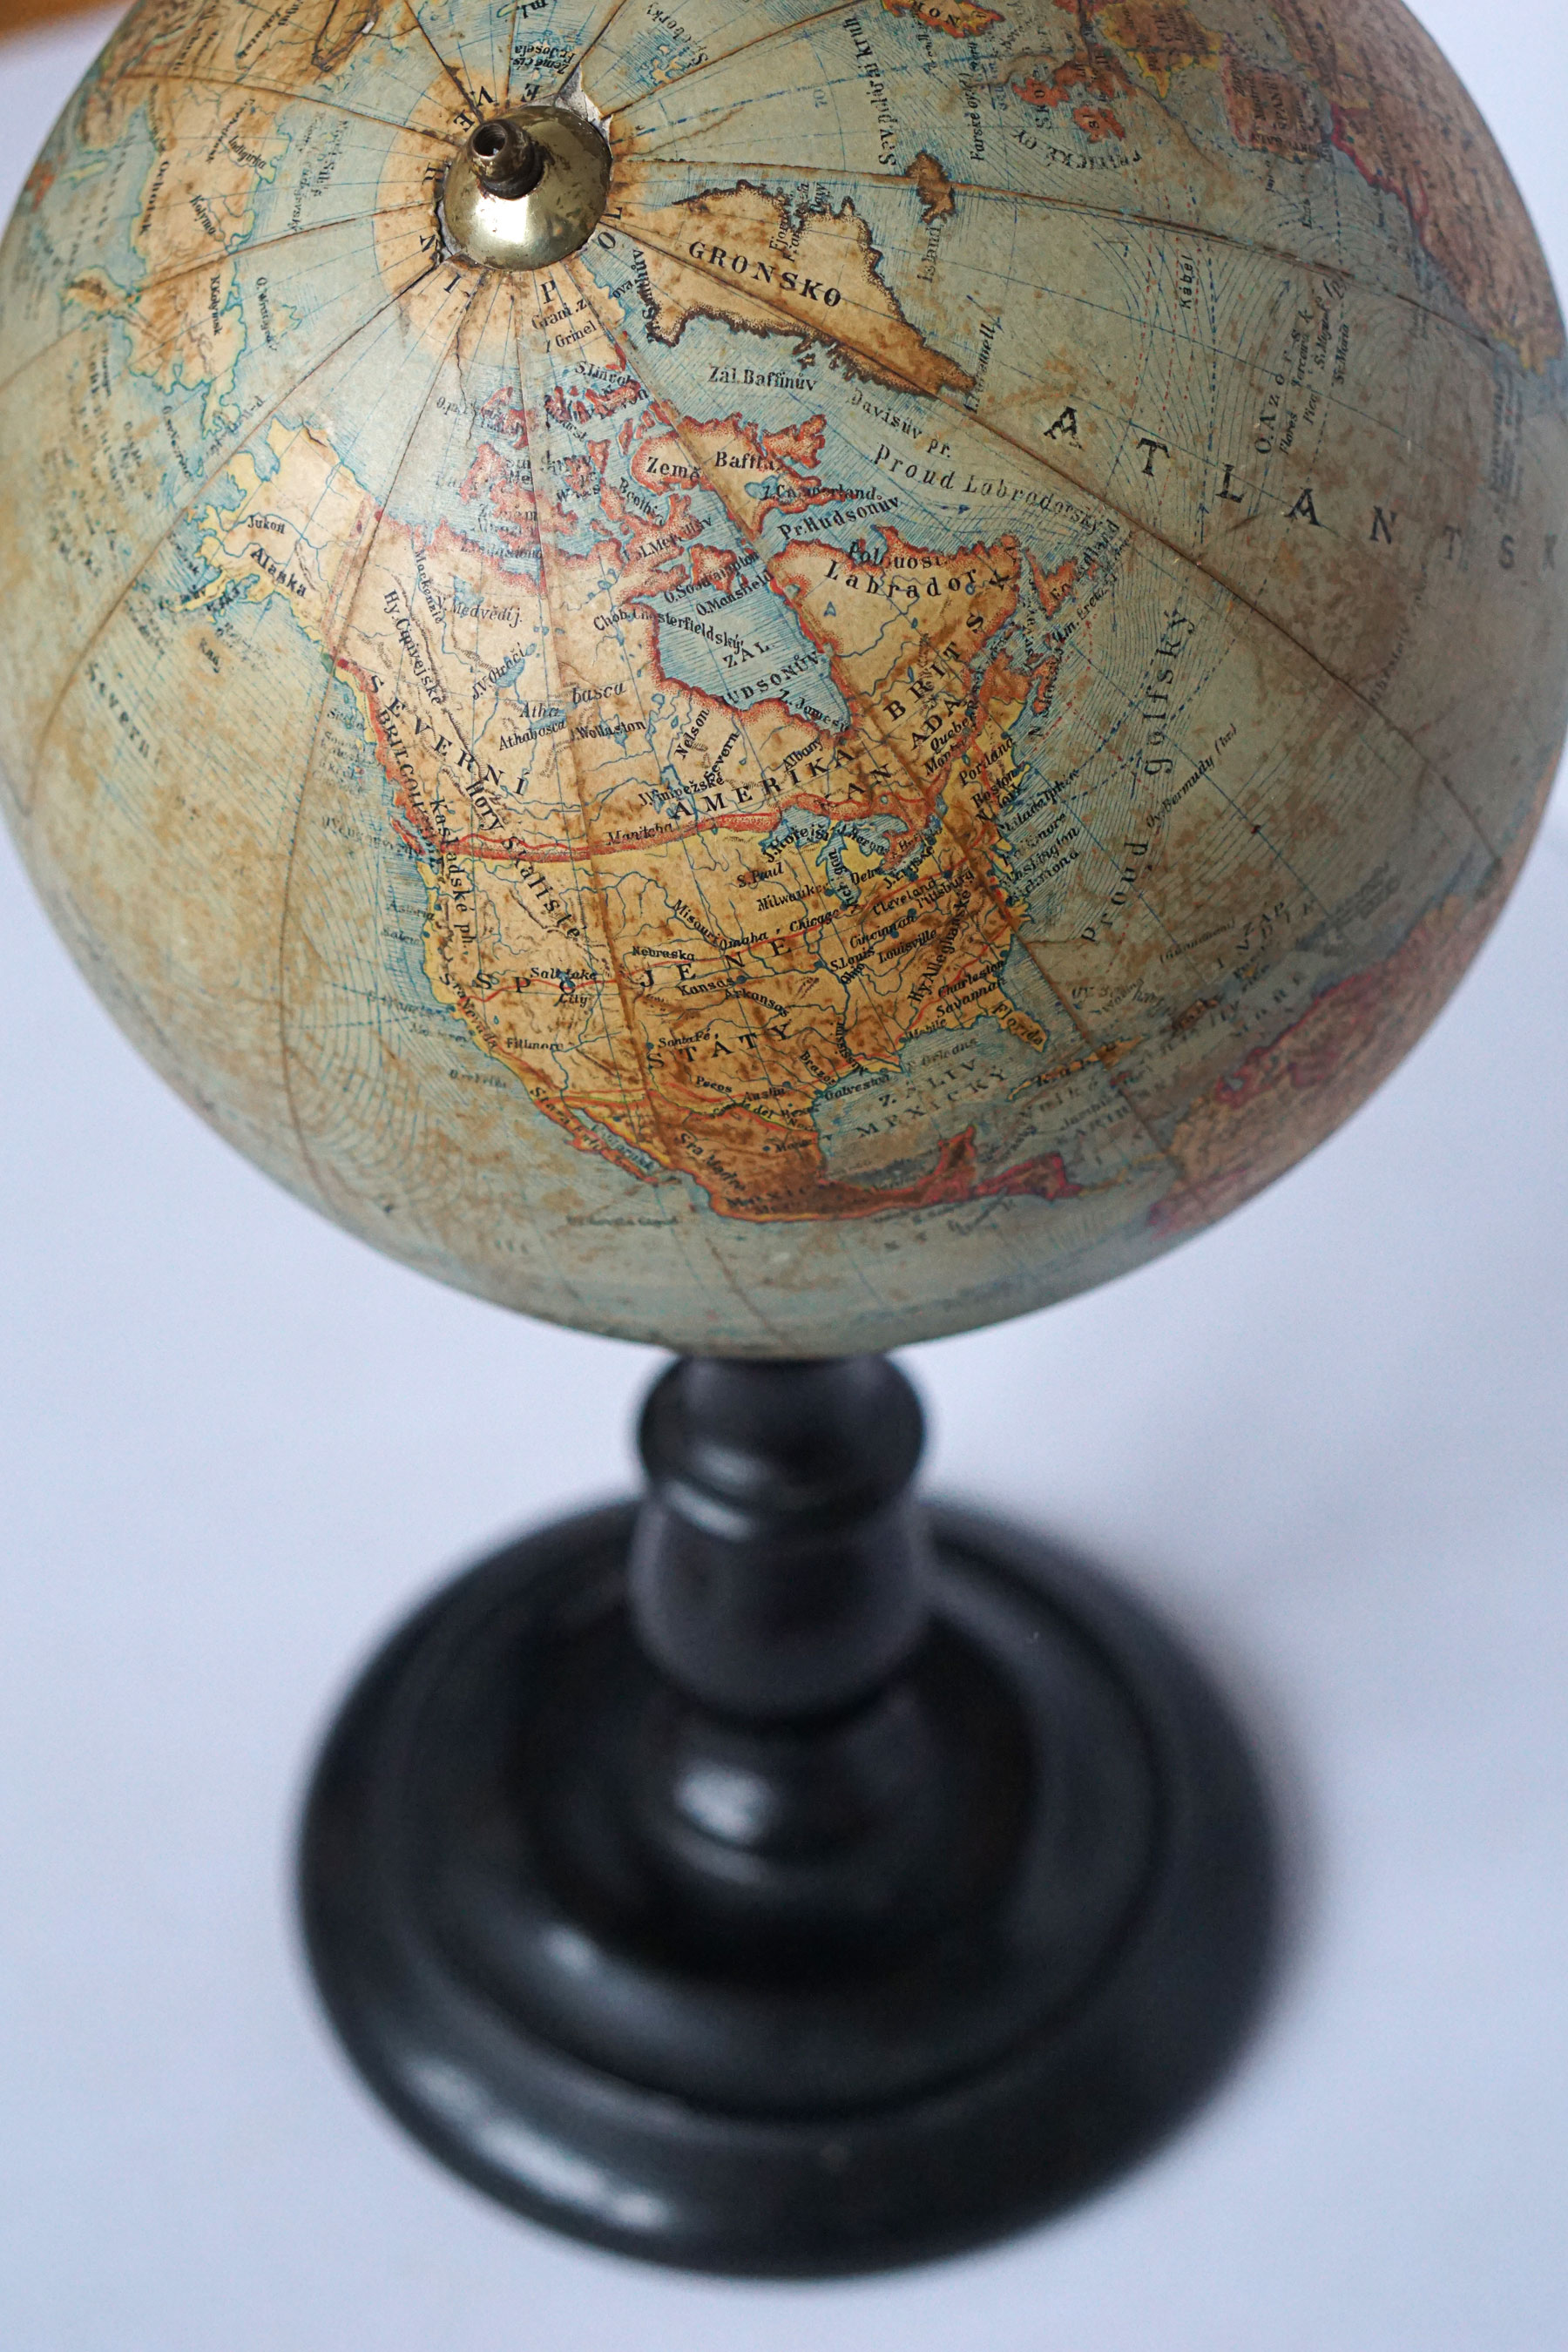 Early 20th century terrestrial globe by Felkl & Son